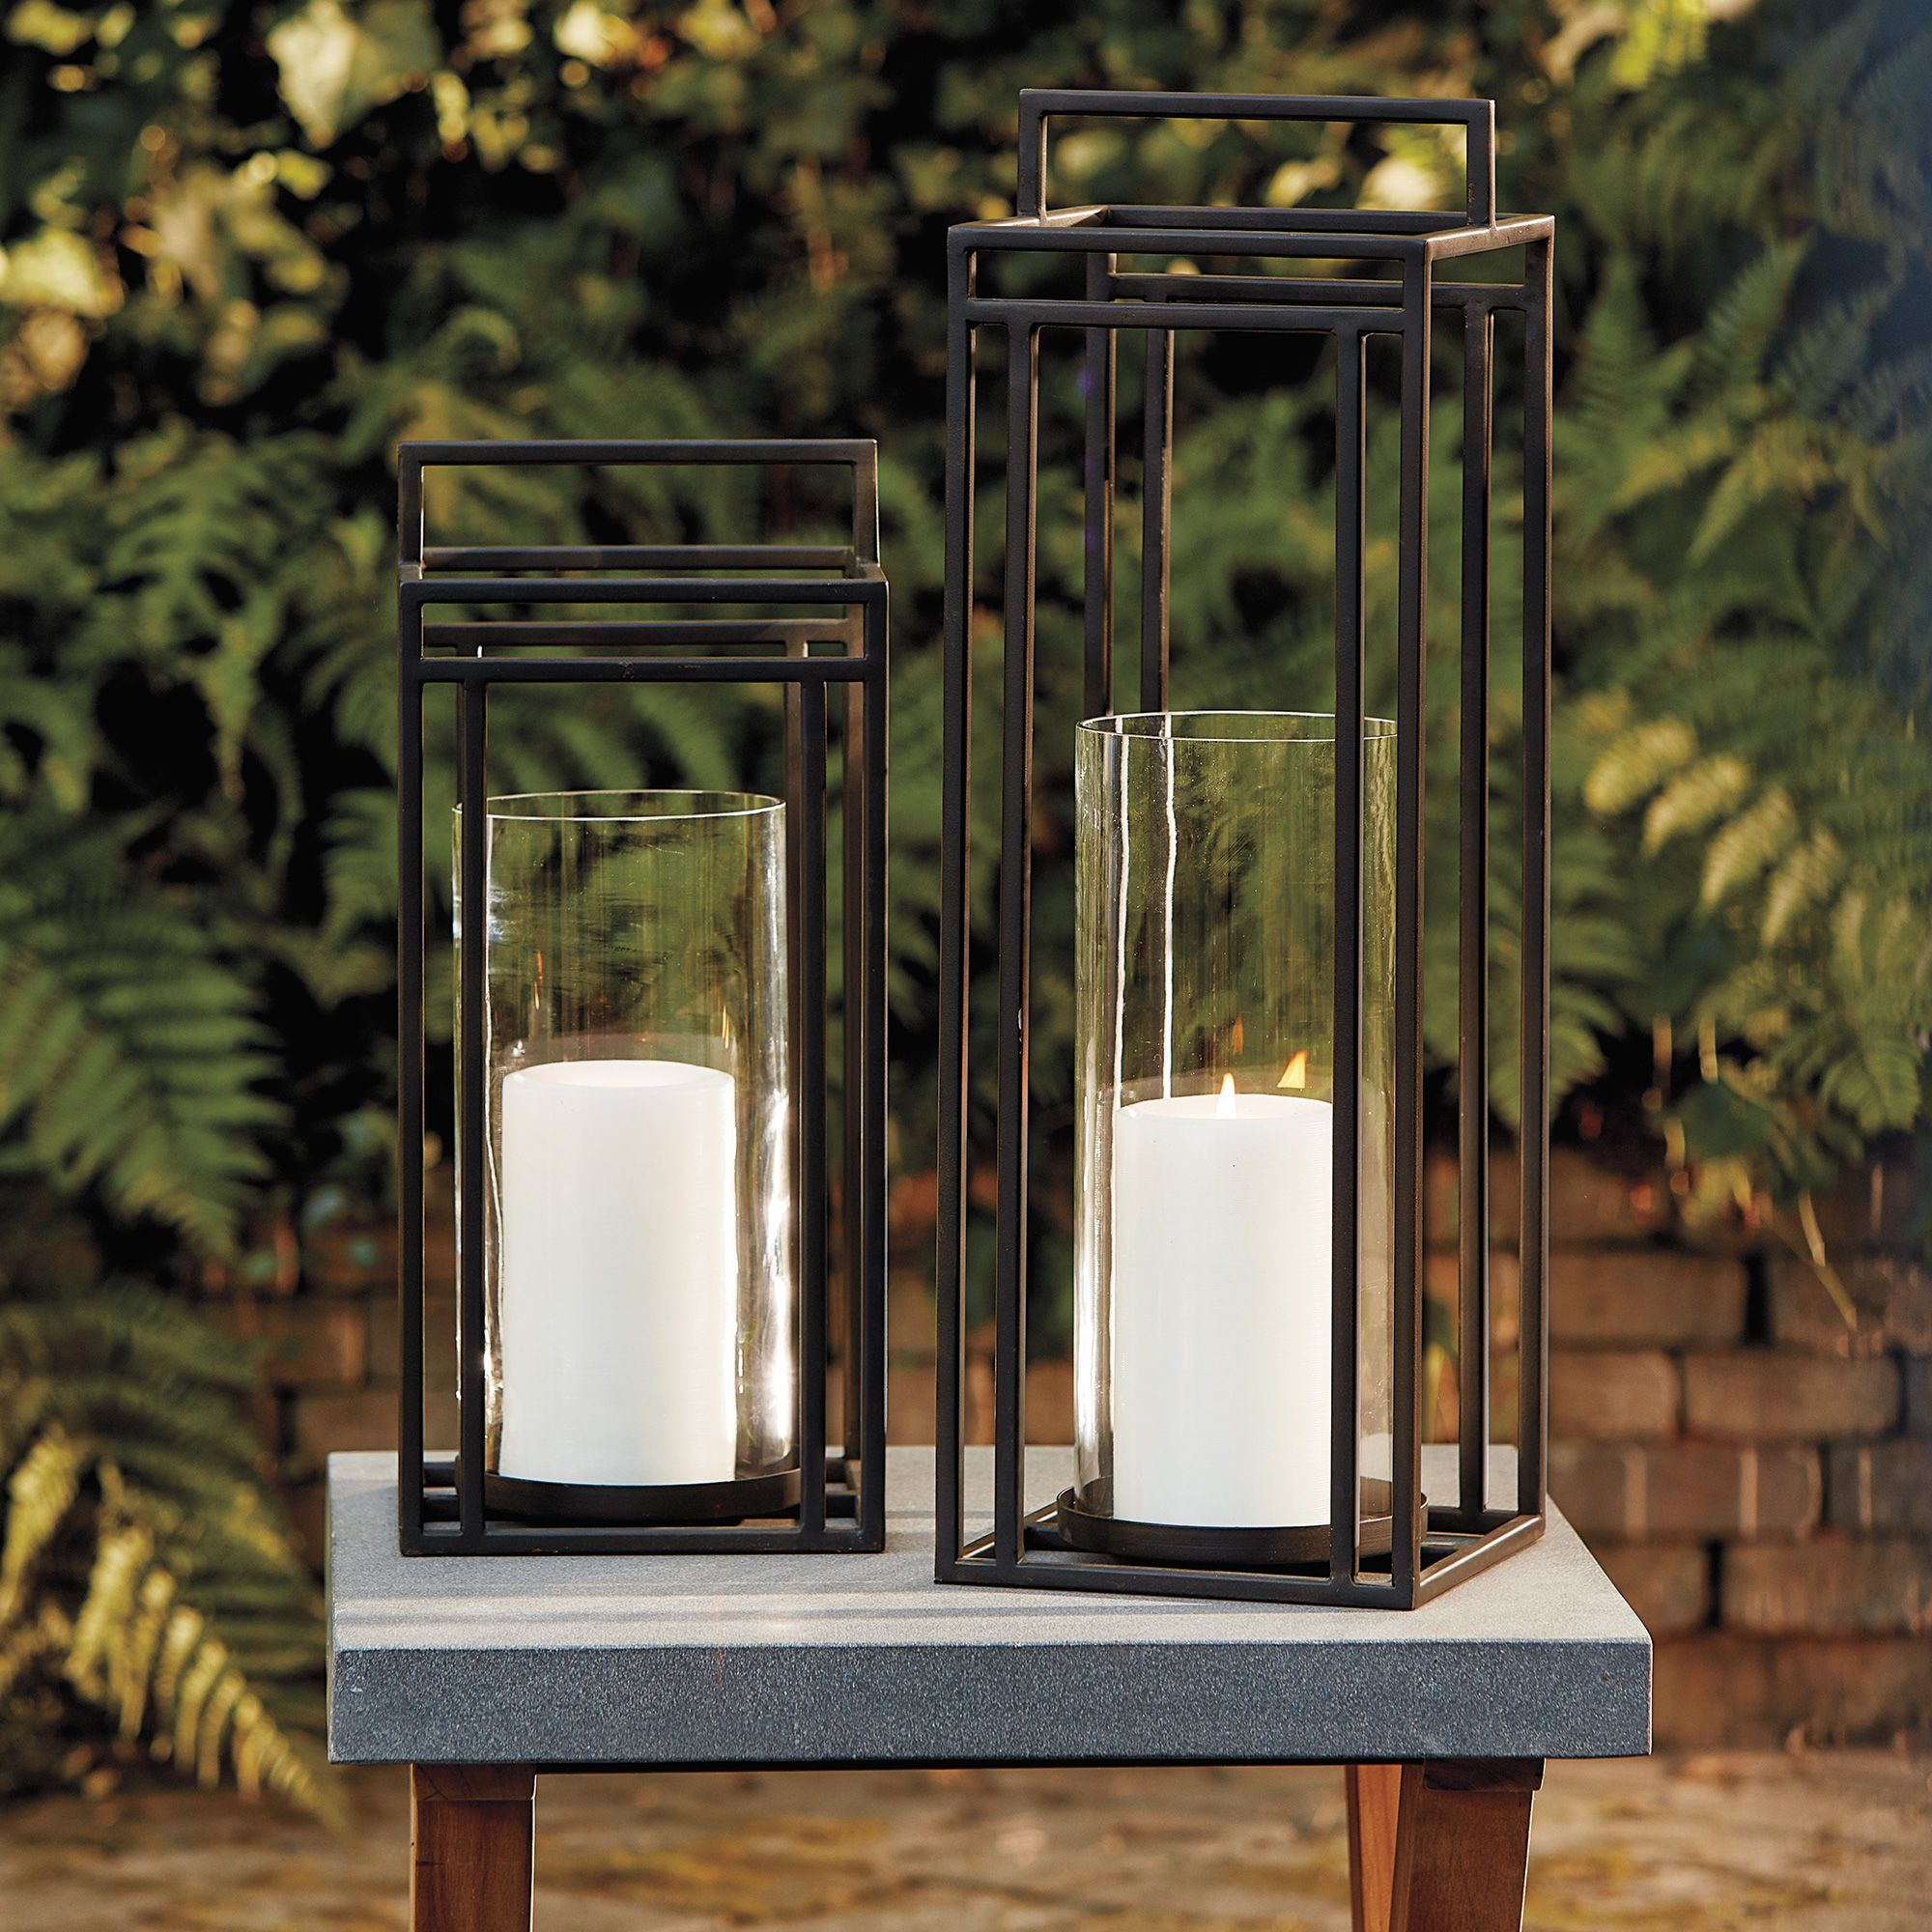 Theo Glass And Iron Candle Lantern In 2021 Candle Lanterns Outdoor Candles Iron Candle